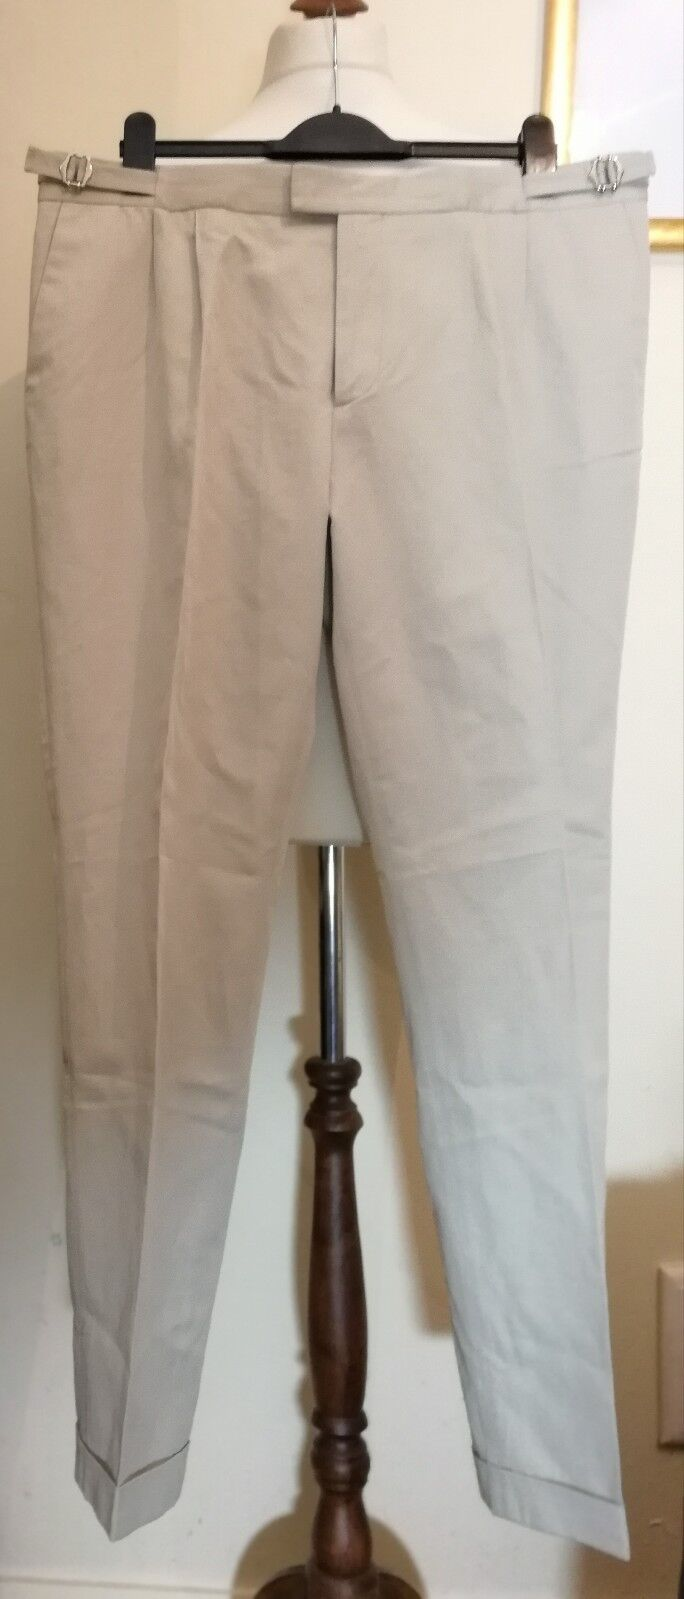 The kooples Tailored Pleated Dress Pants Turn-up Trouser Beige Size 38